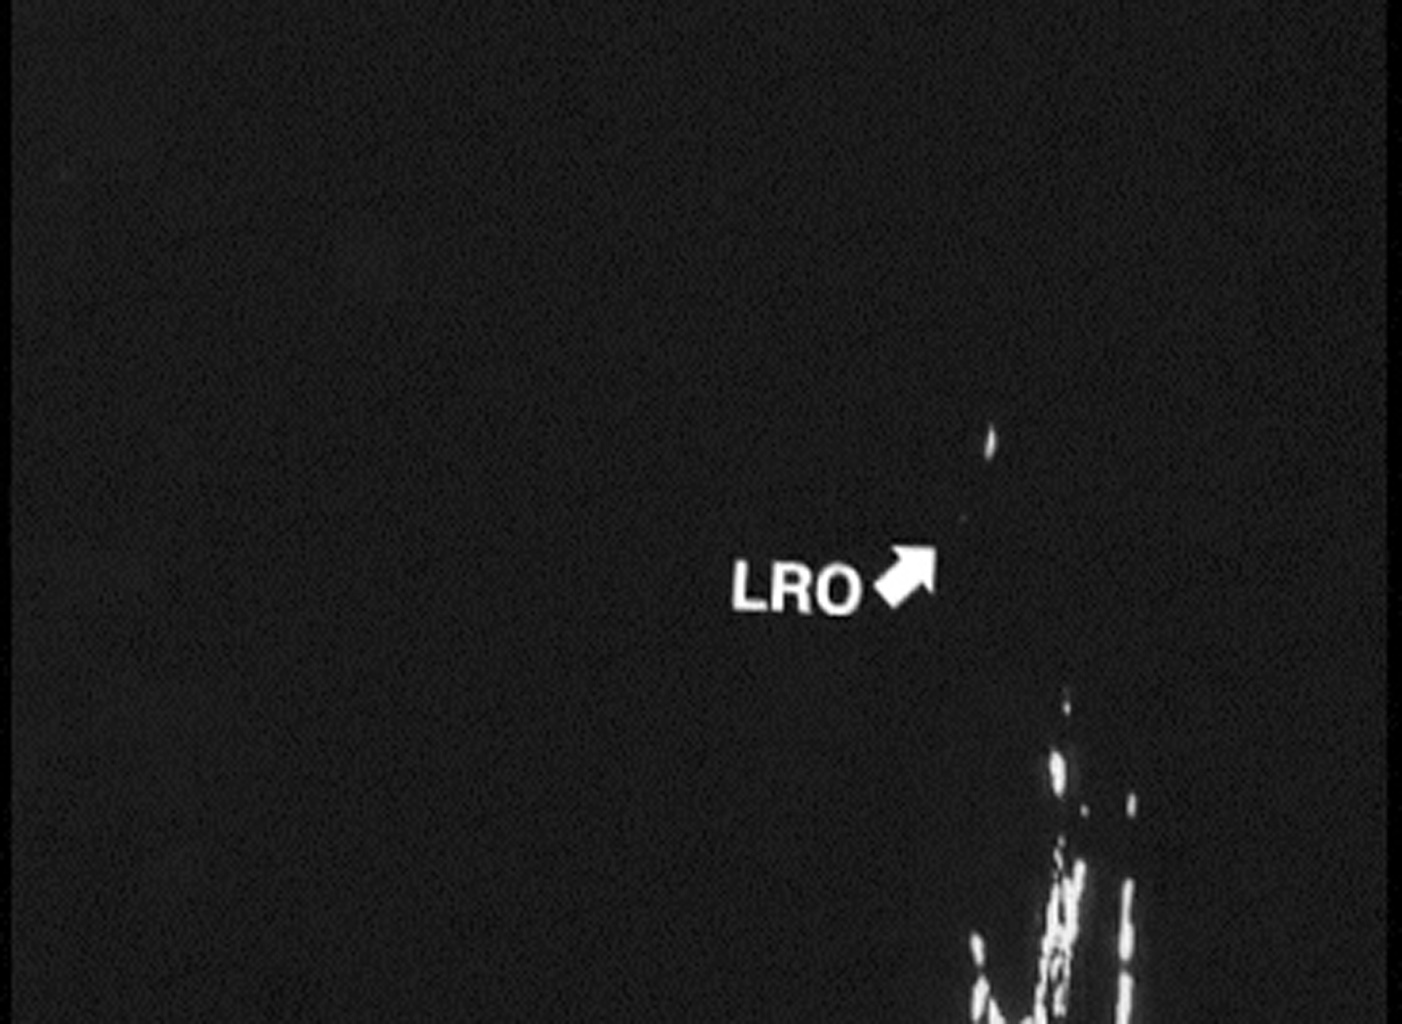 This is the first footage of one orbiting robotic spacecraft taken by another orbiting robotic spacecraft at Earth's moon. 'Flow,' one of two satellites making up NASA's GRAIL mission, captured this video of NASA's LRO as it flew by.